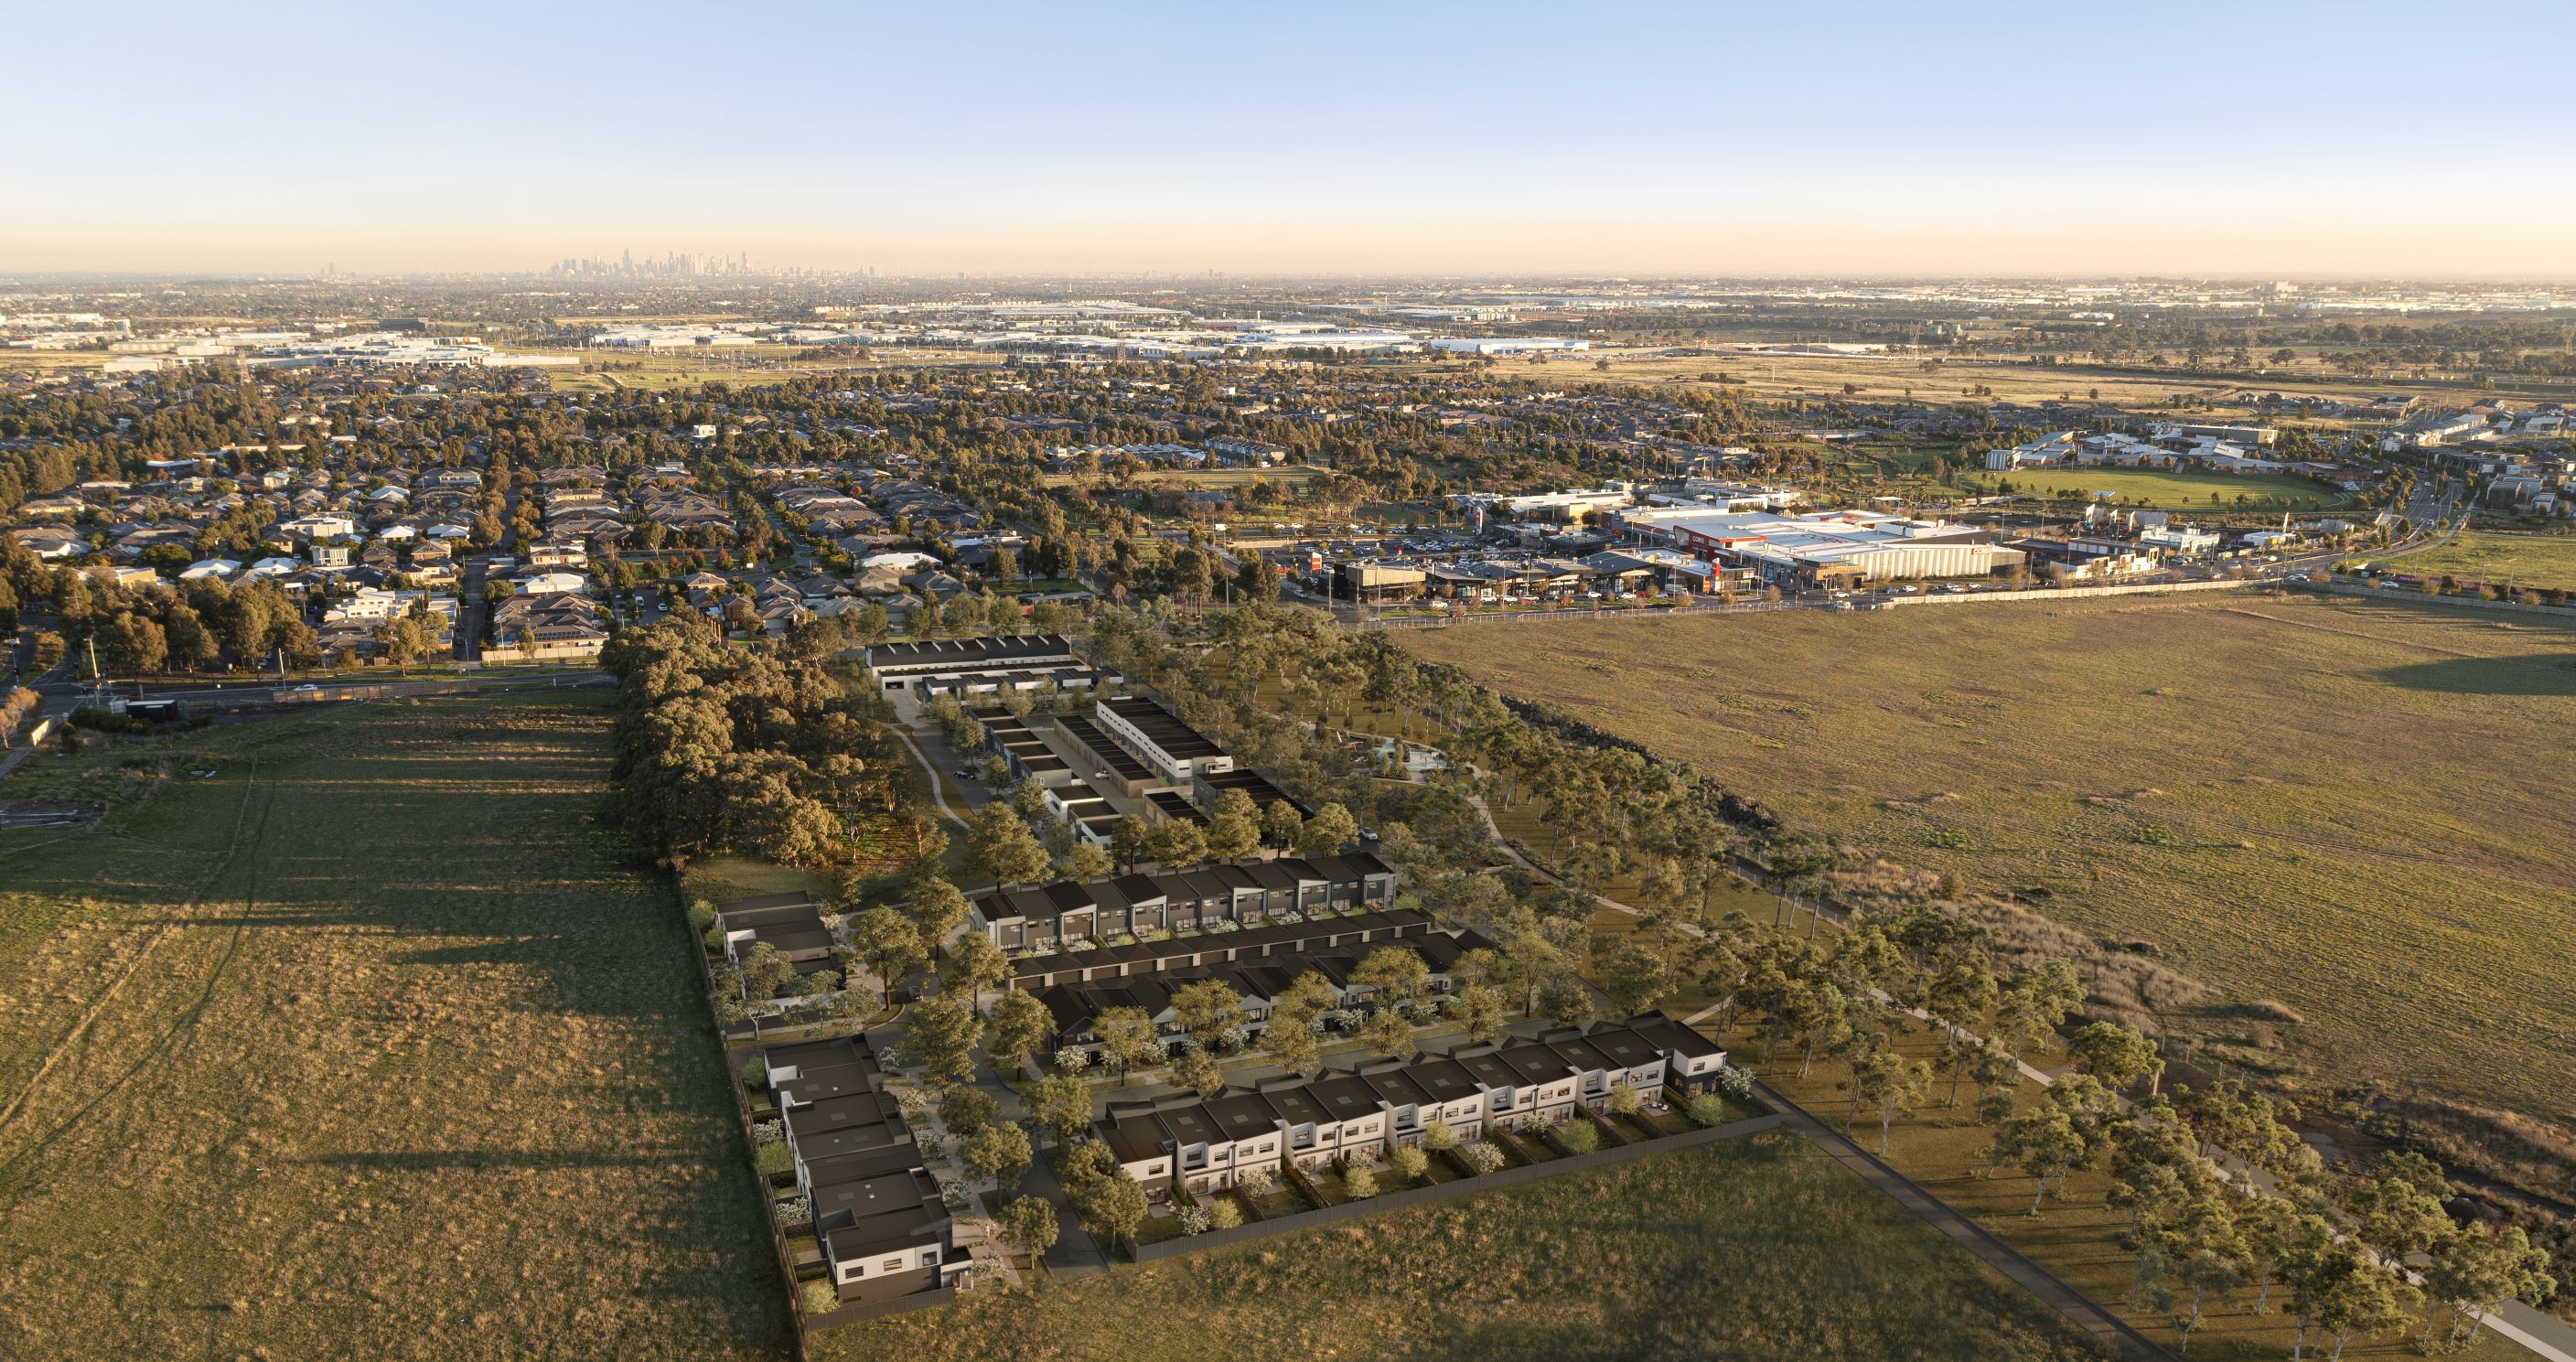 Aerial view artist impression of houses at the habitas aurora site in Wollert